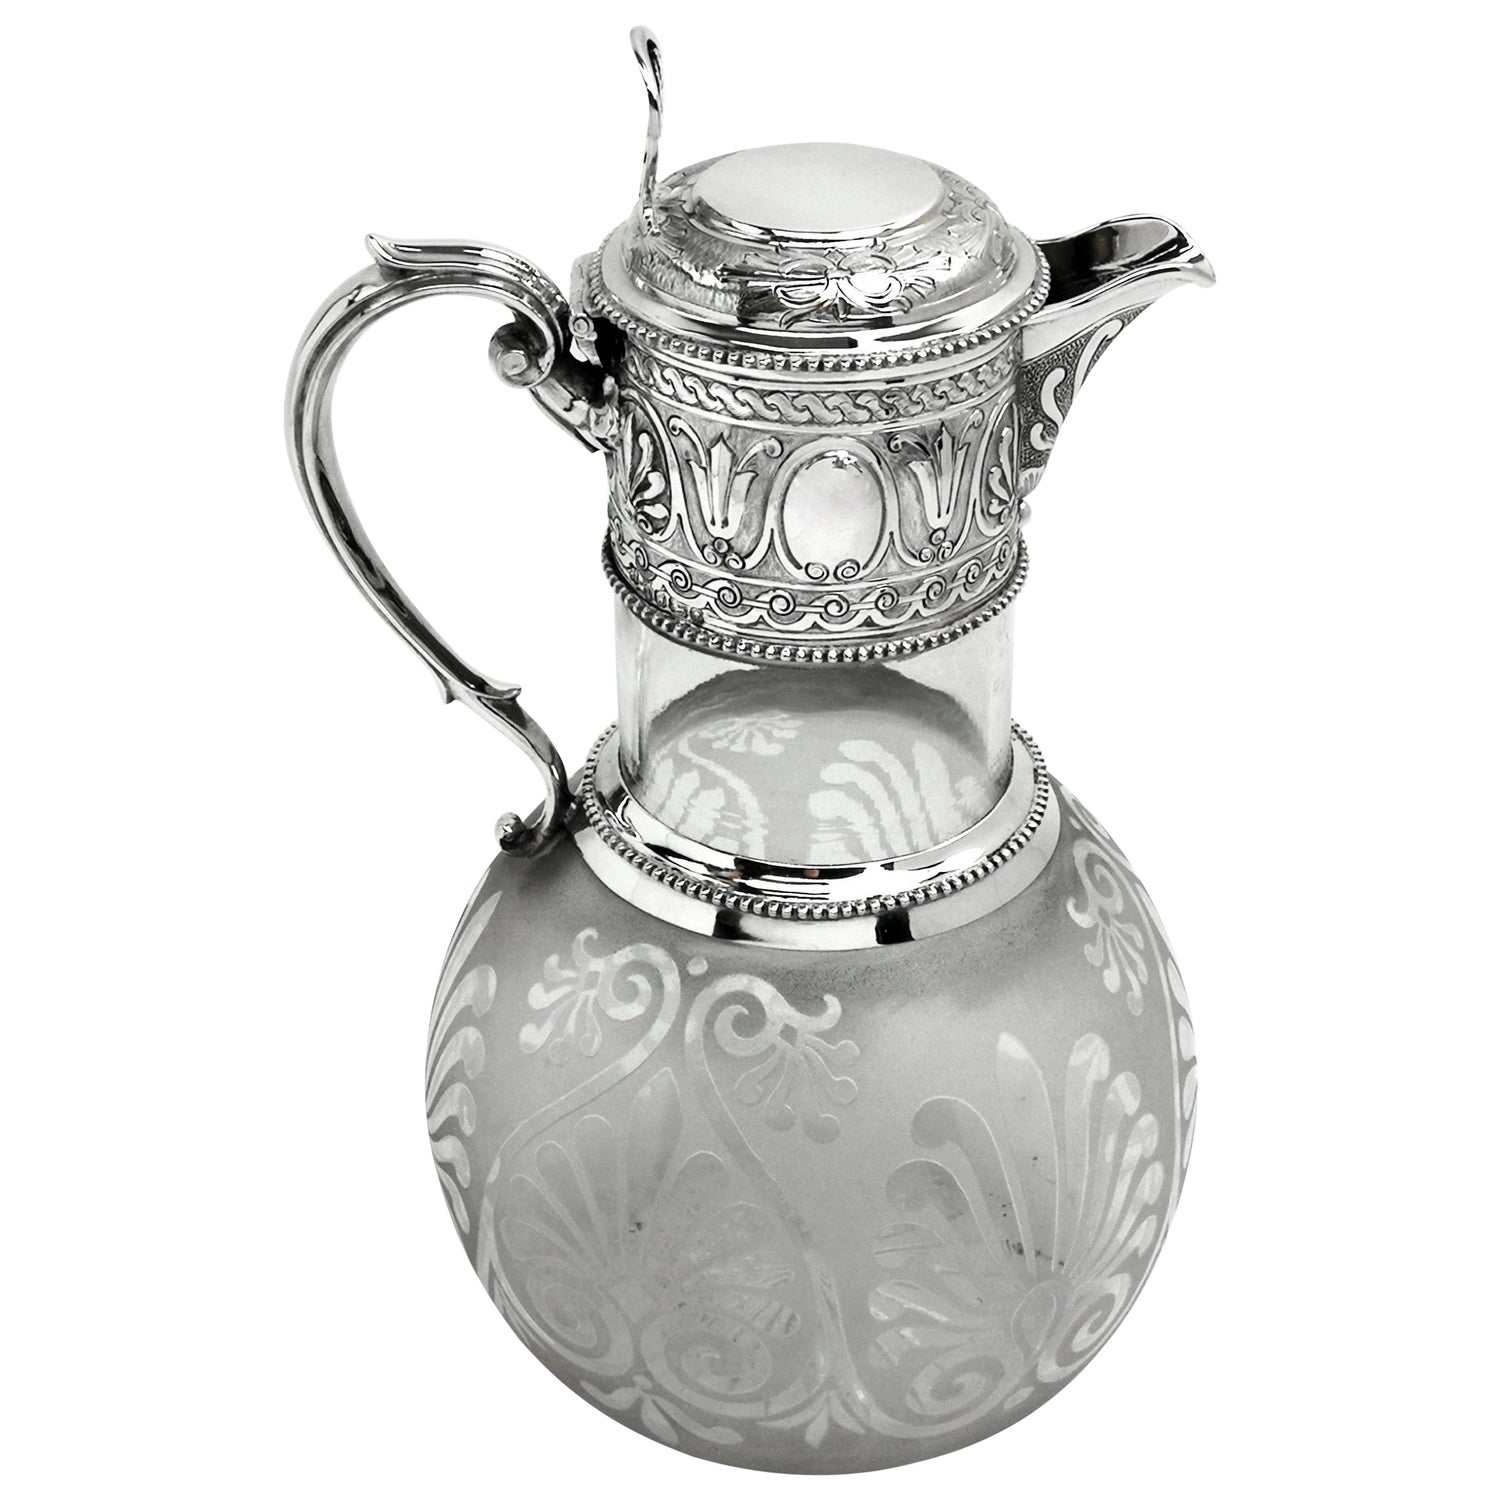 Antique Victorian Silver and Glass Claret Jug / Wine Jug, 1864